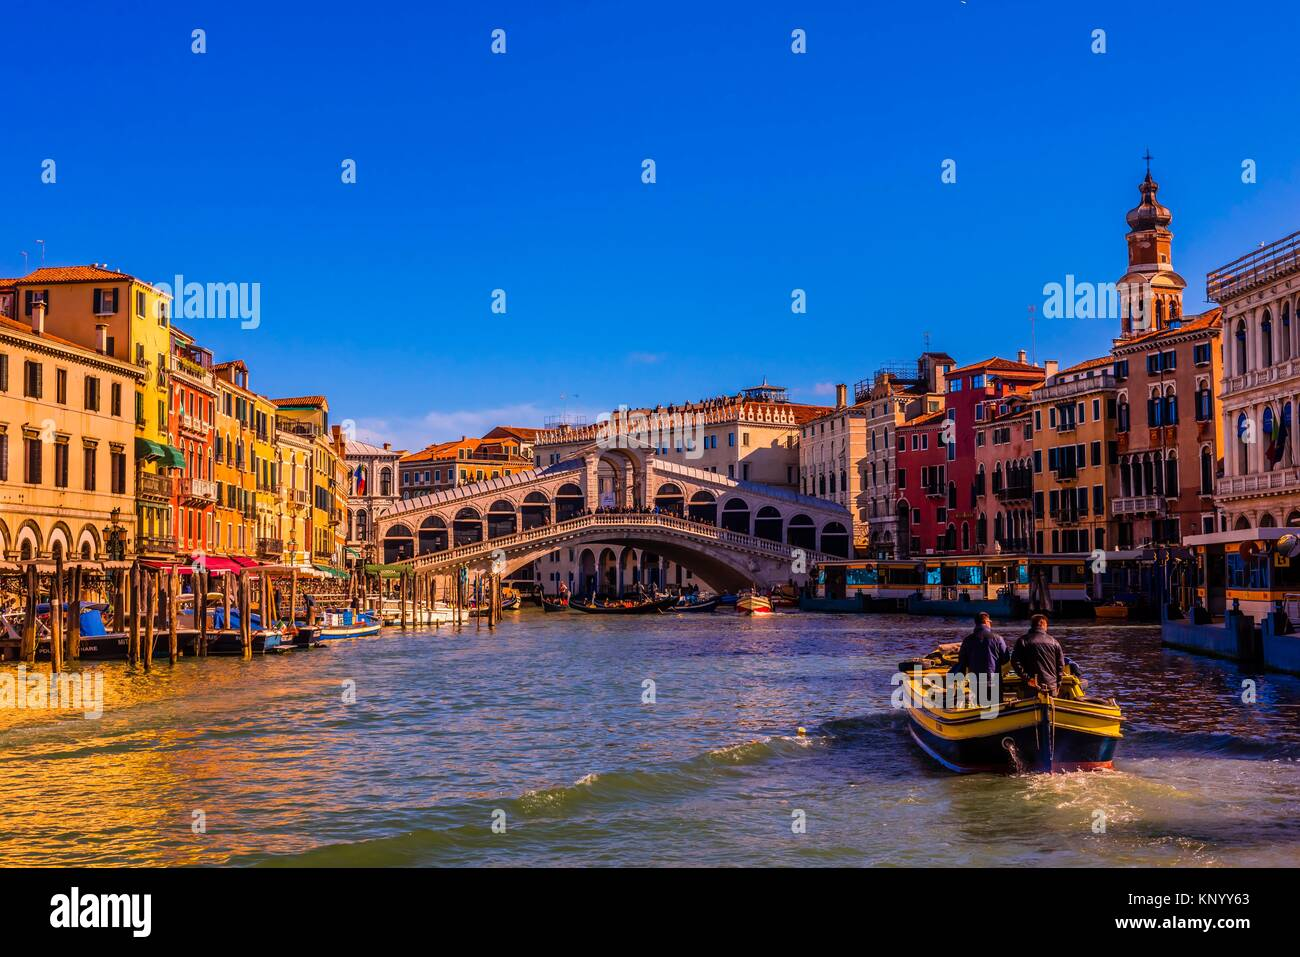 The Grand Canal with the Rialto Bridge in background, Venice, Italy. - Stock Image